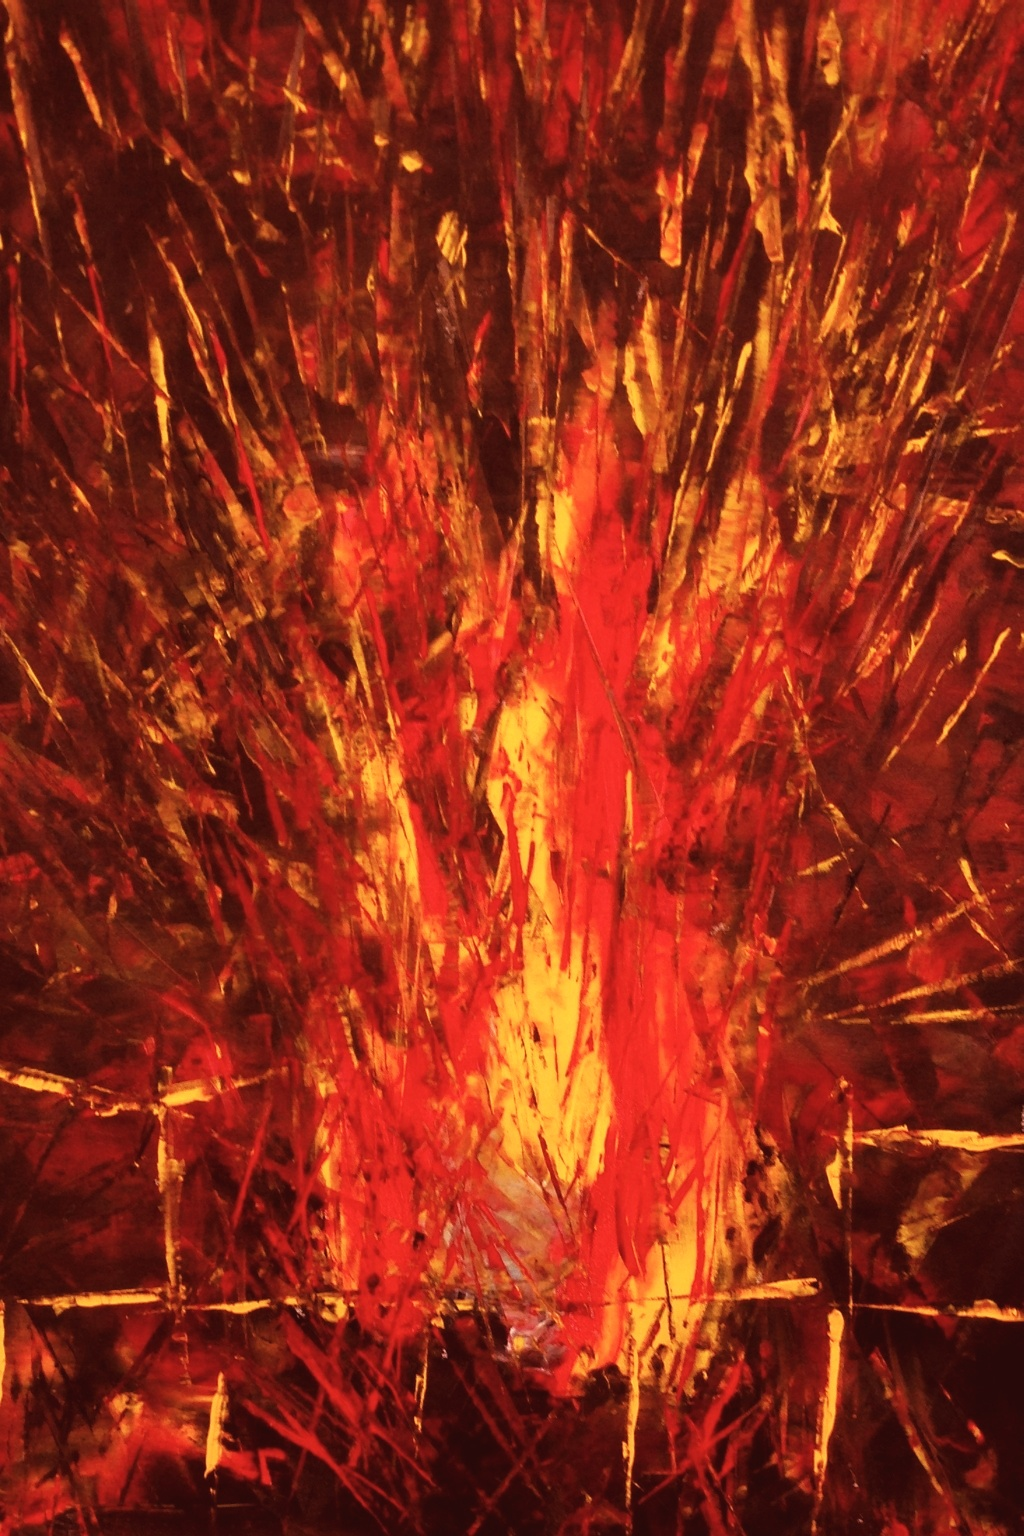 20-elements-fire-original-acrylic-24-x-36-inches-by-laara-williamsen-april-2013